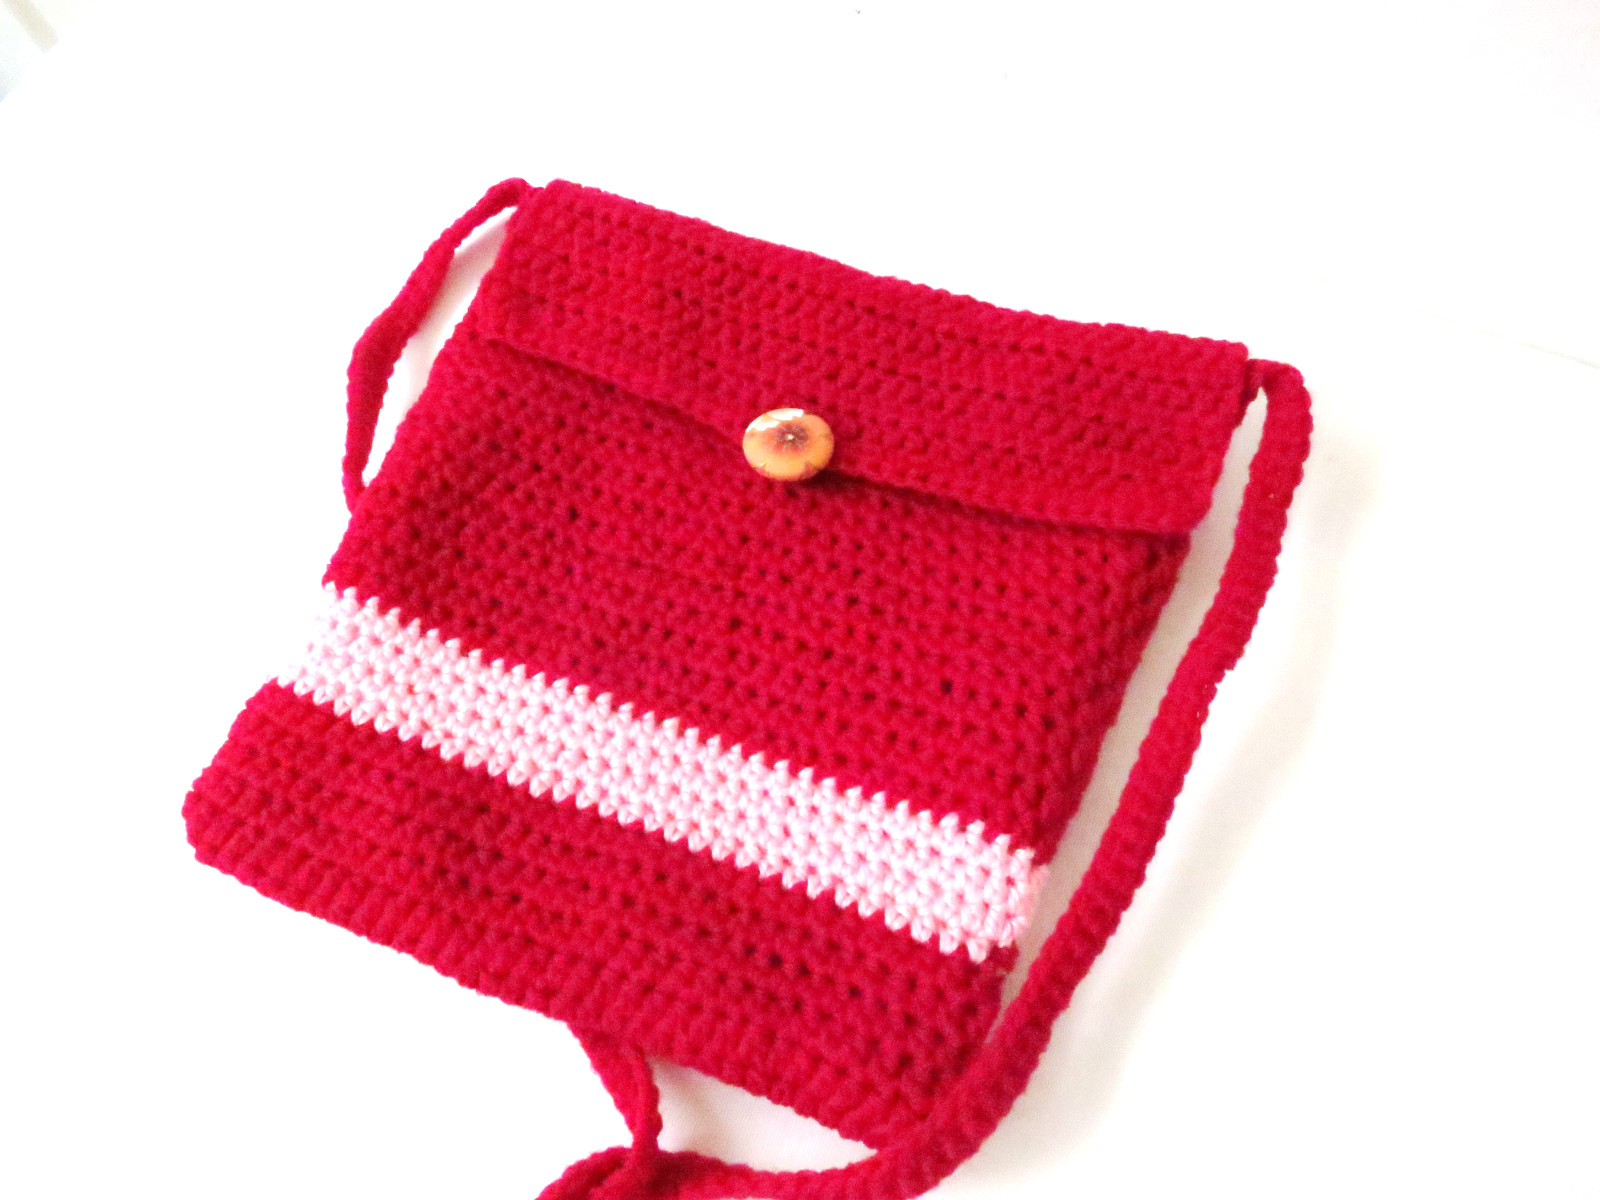 Sling bag crochet - As For The Closure I Used A Covered Button It Fitted Perfectly